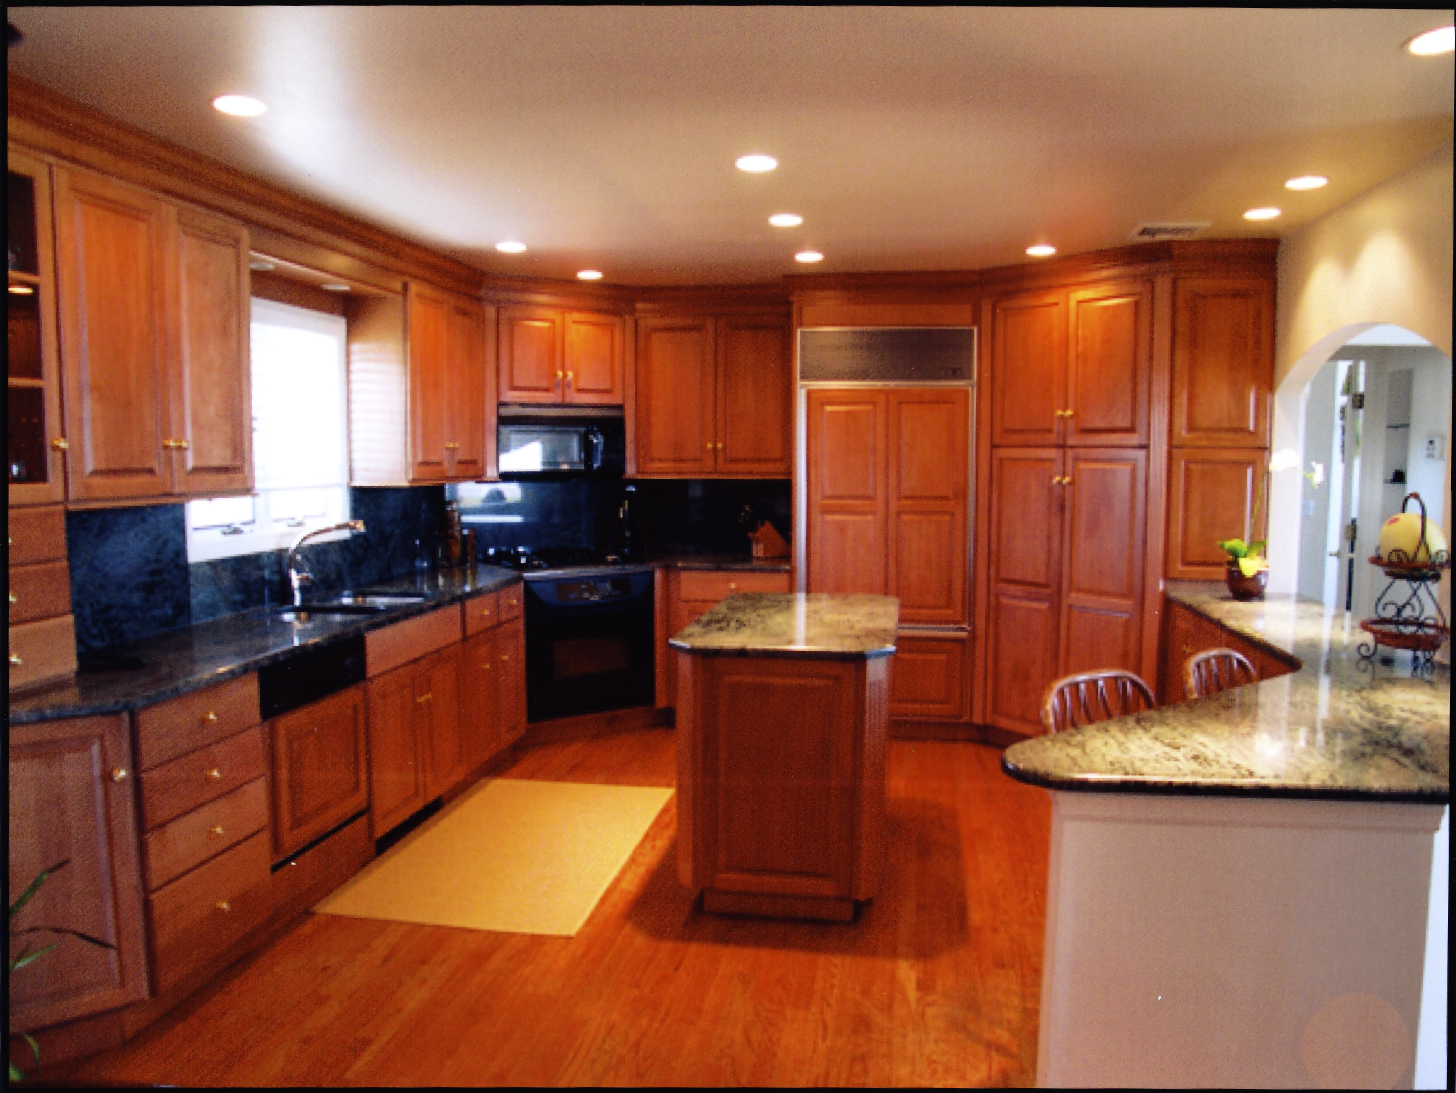 Two-Granite-Countertops-In-Kitchen